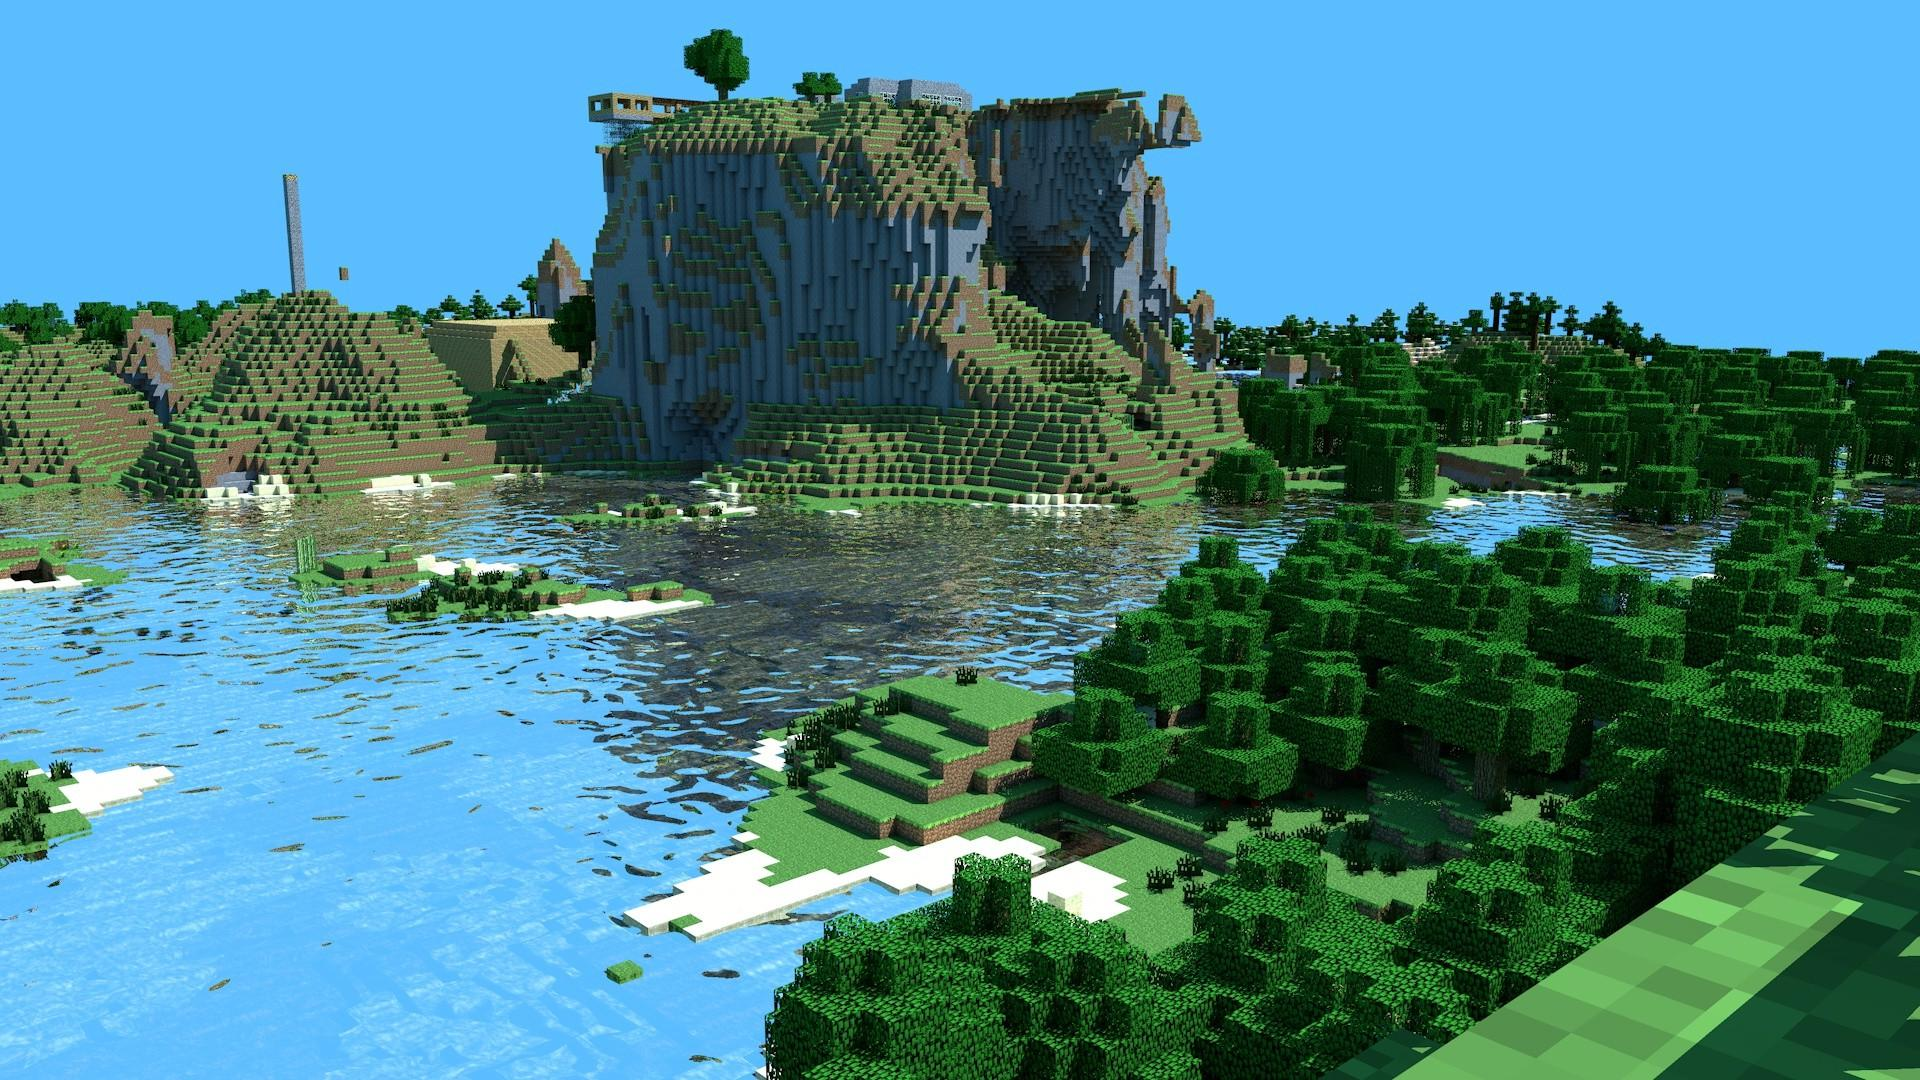 Minecraft Hd Wallpapers Top Free Minecraft Hd Backgrounds